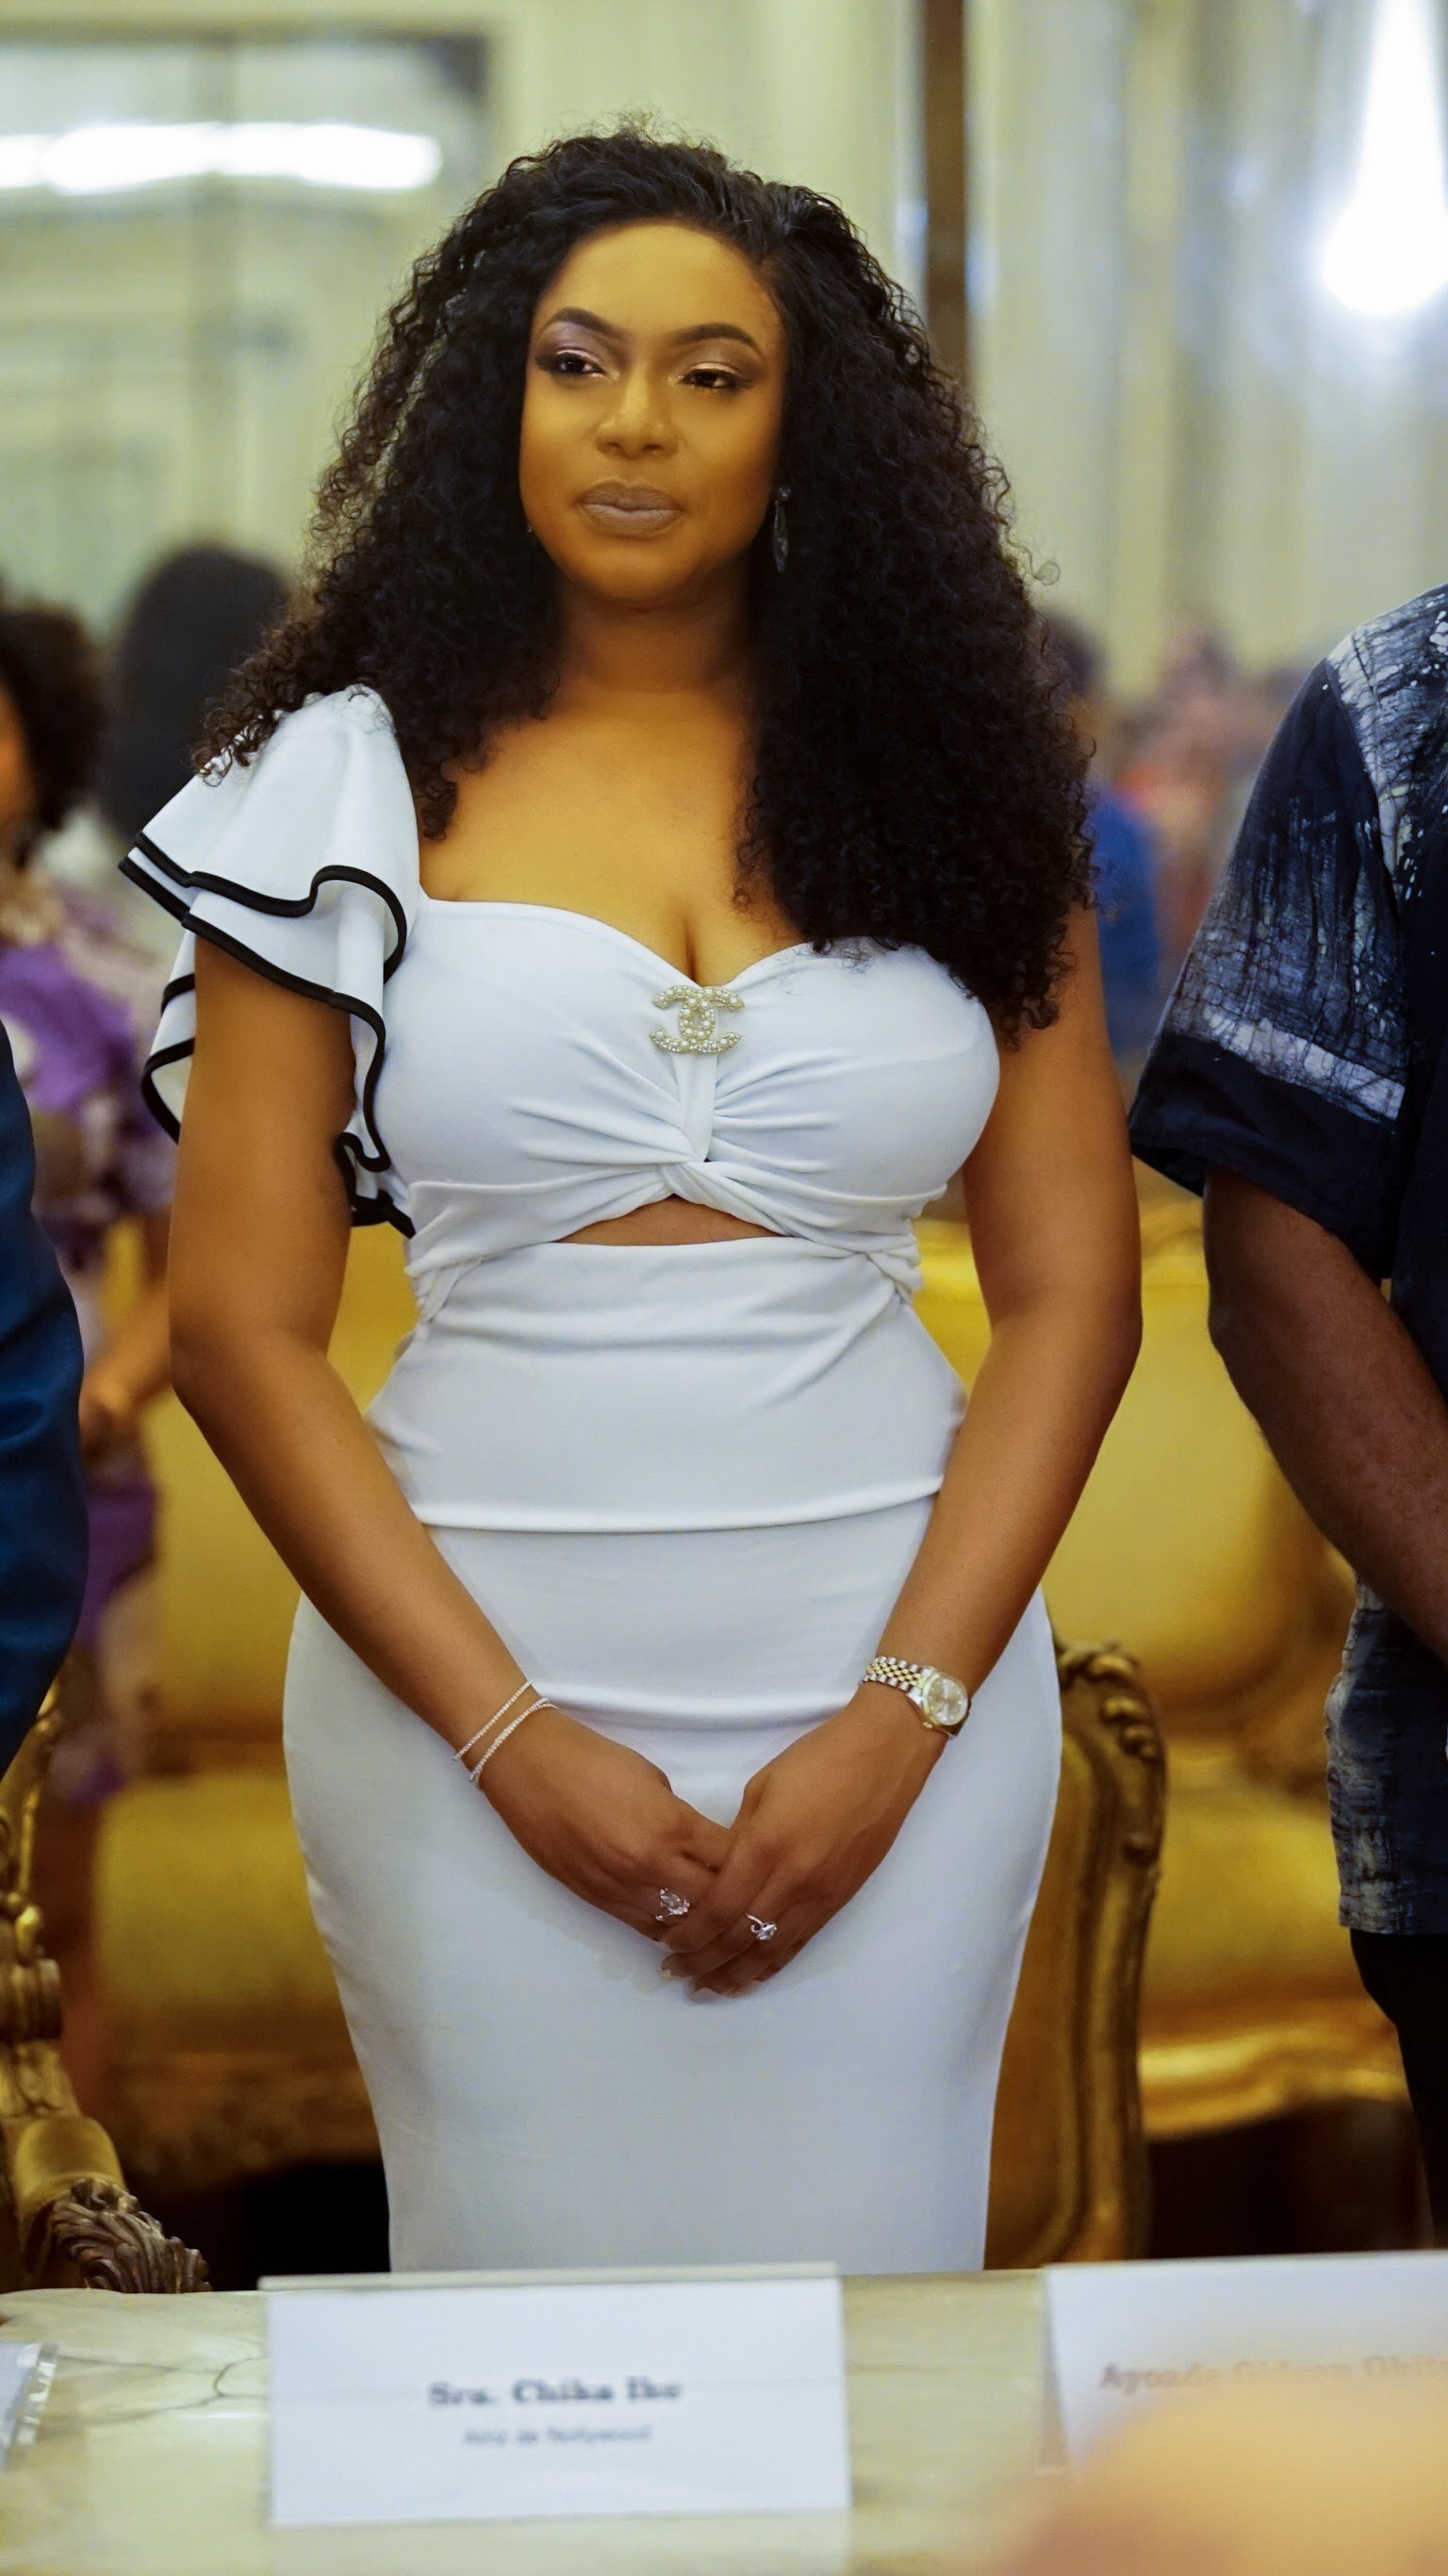 #Nollywood; Chika Ike Speaks at an event in Brazil